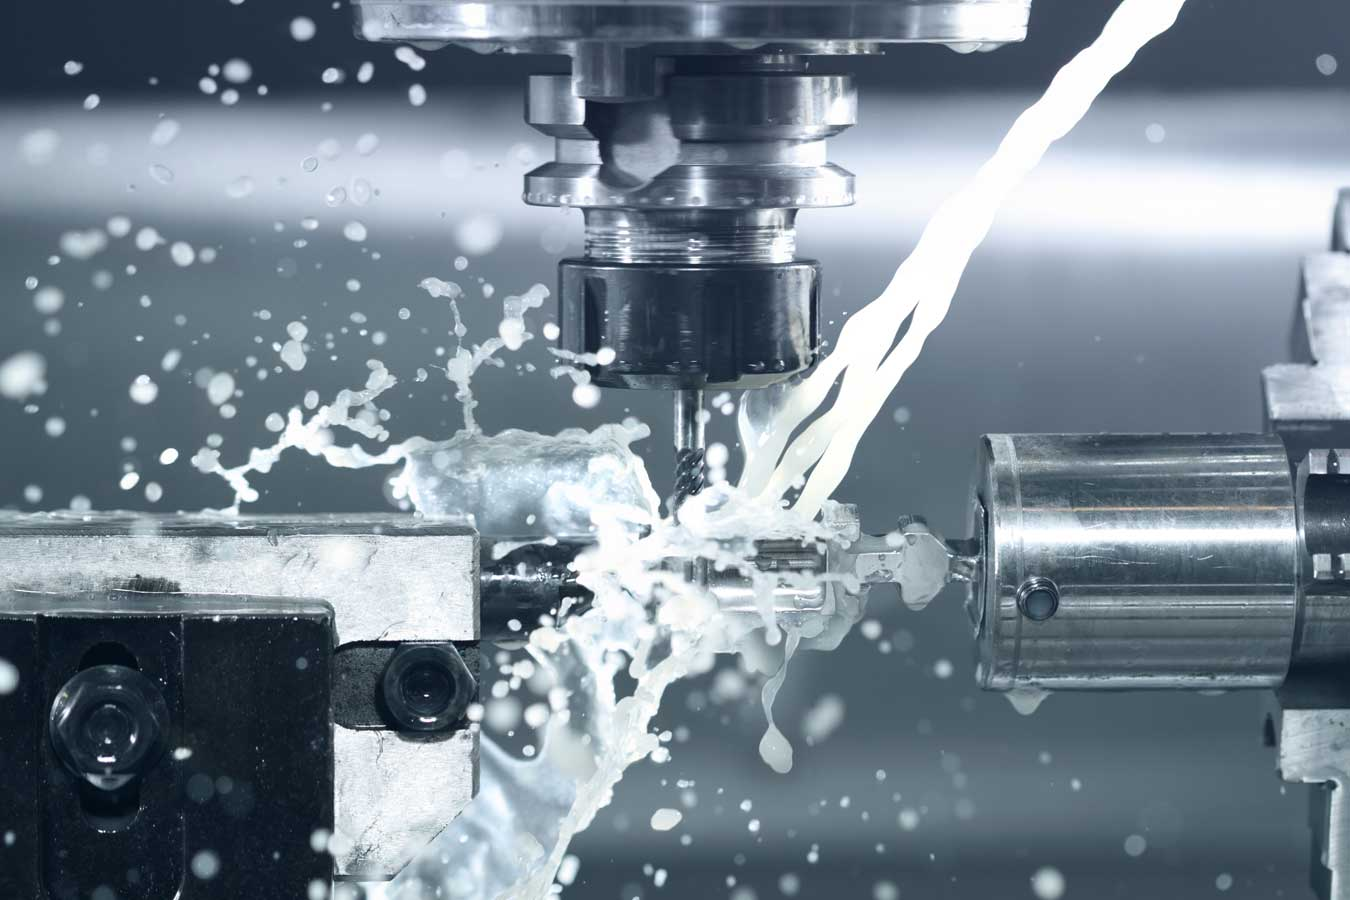 SolidProfessor | The Post Processors Role in Machining